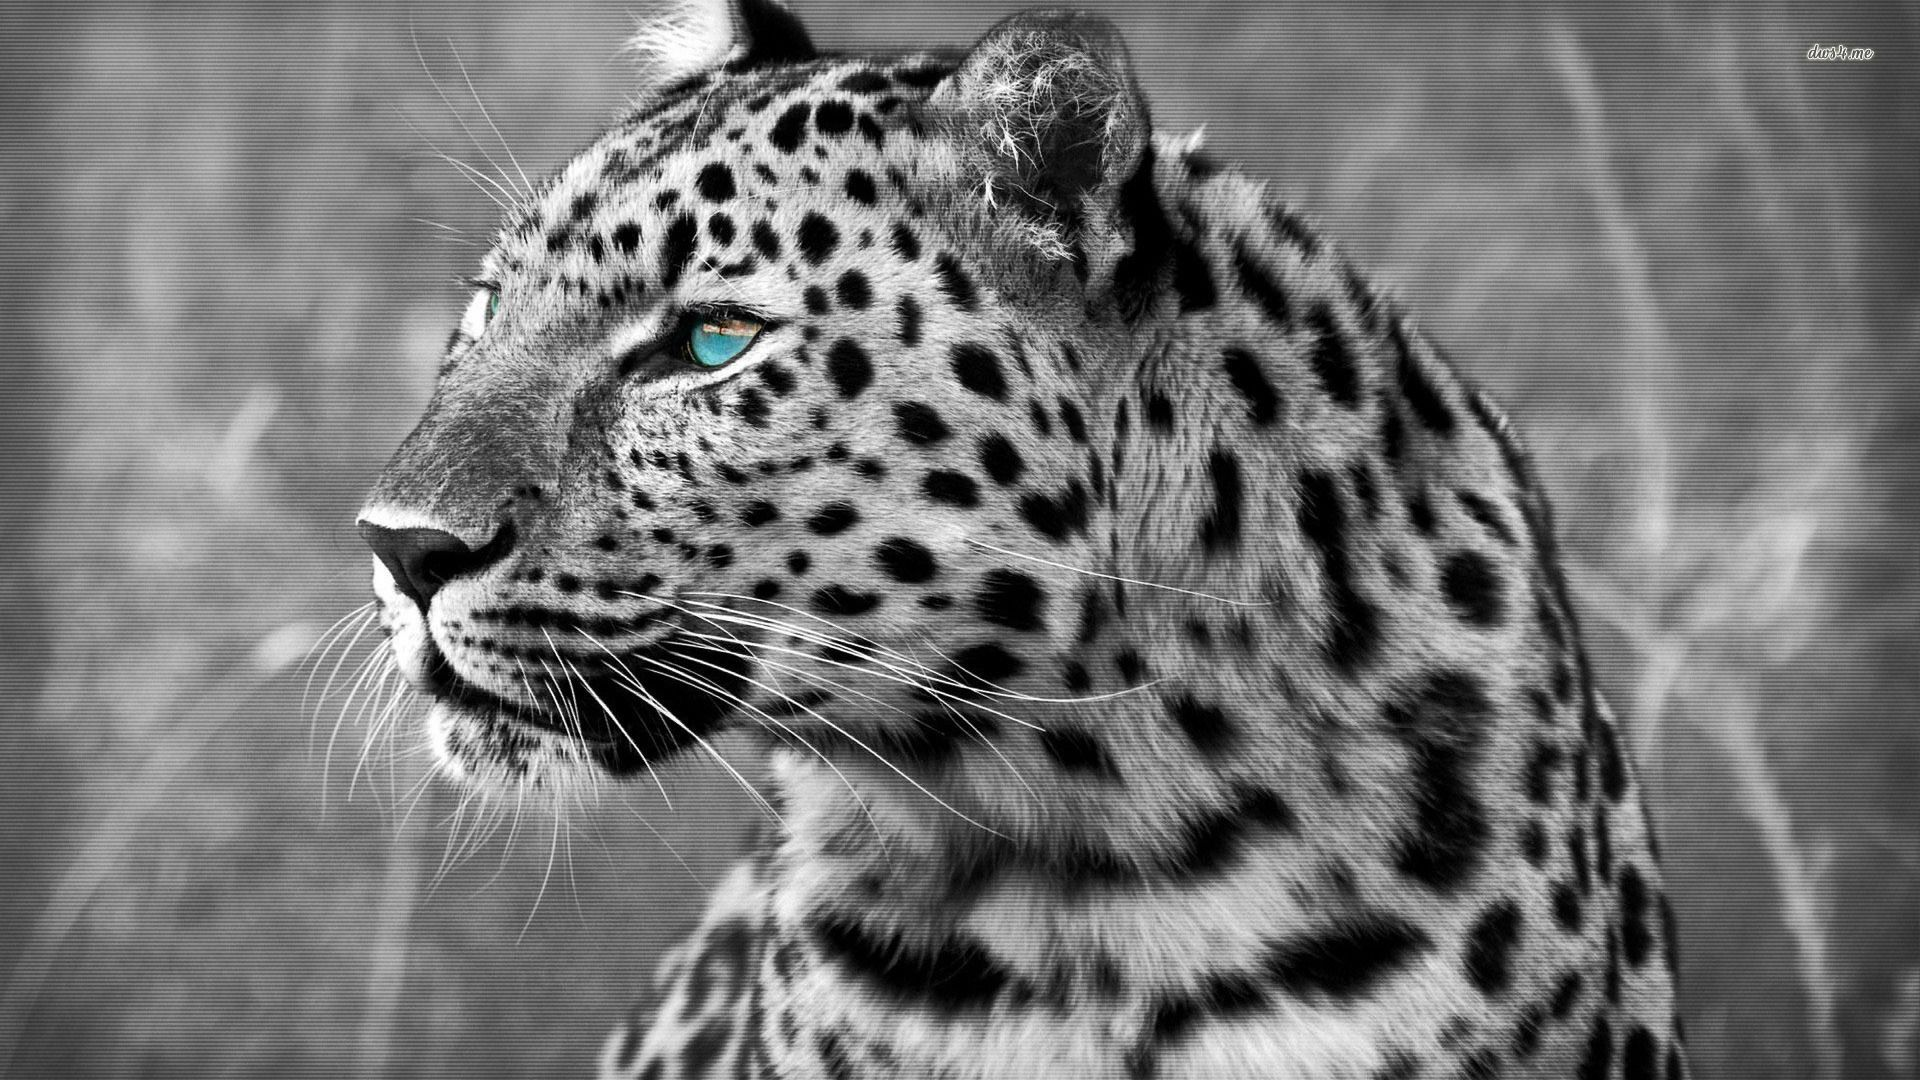 Snow Leopard Wallpaper Android Apps On Google Play 1280